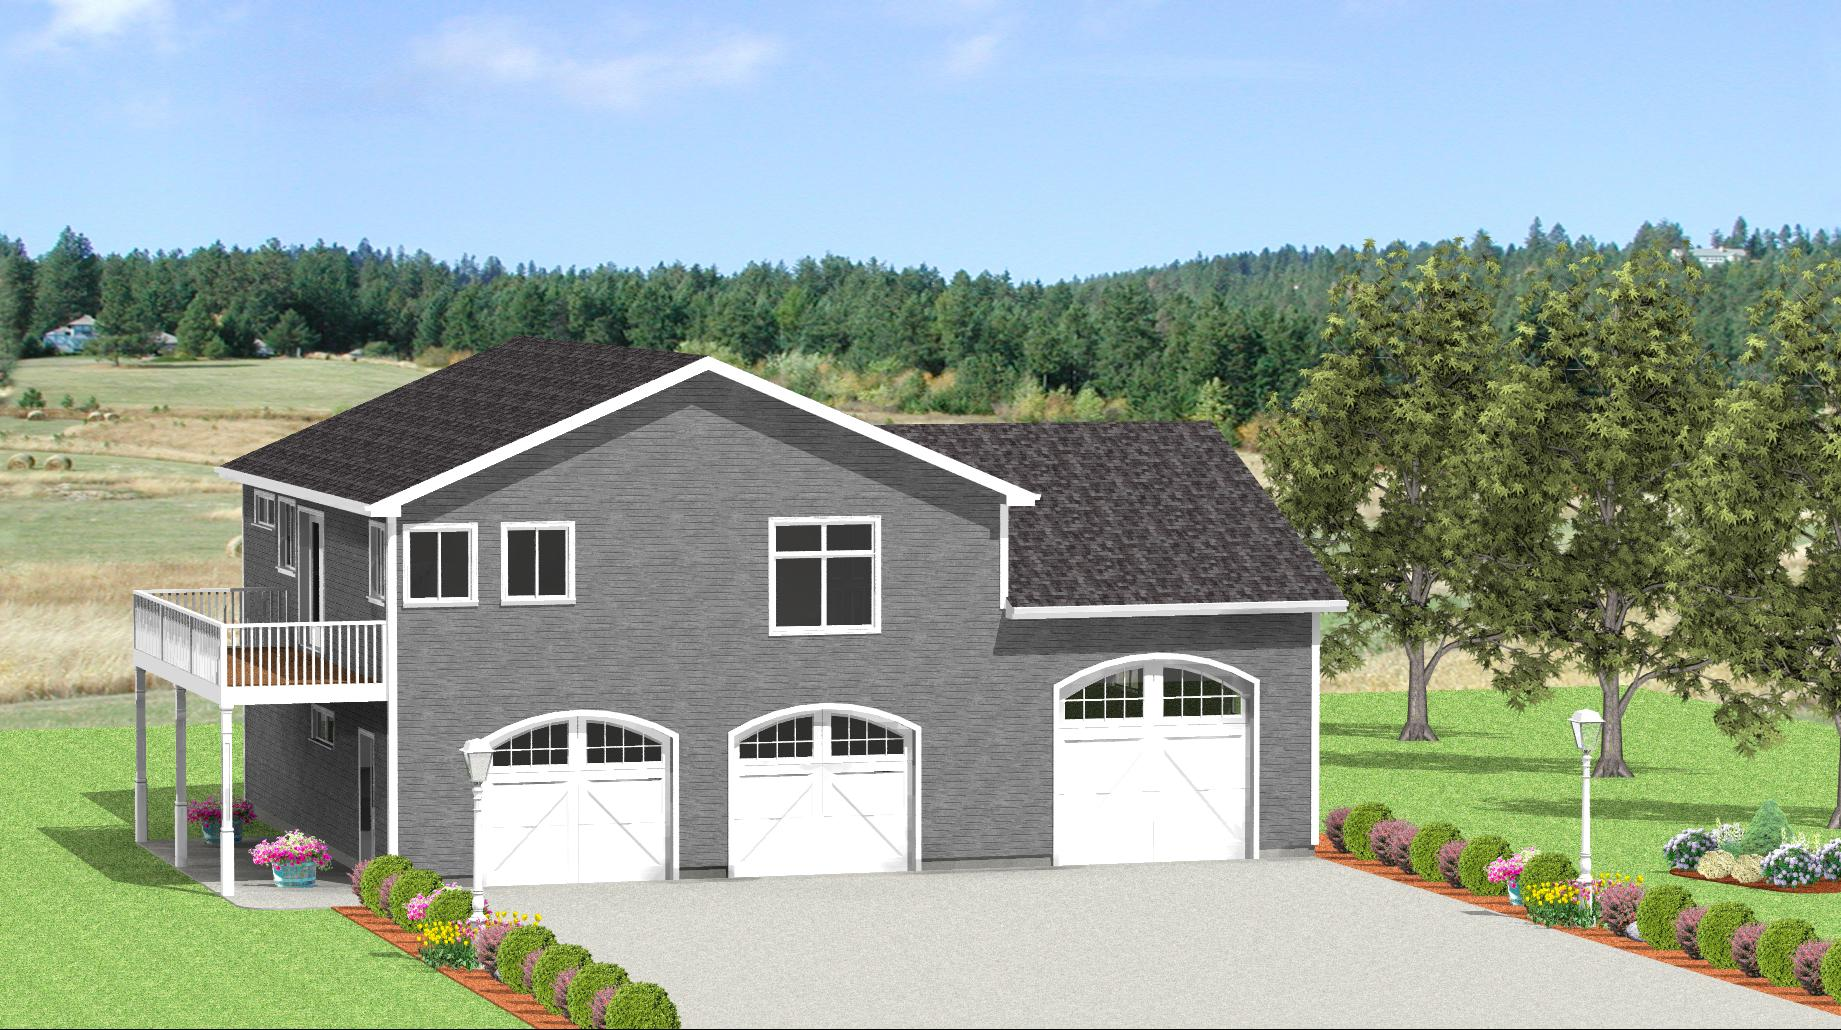 RV garage plans from Design Connection LLC  house plans